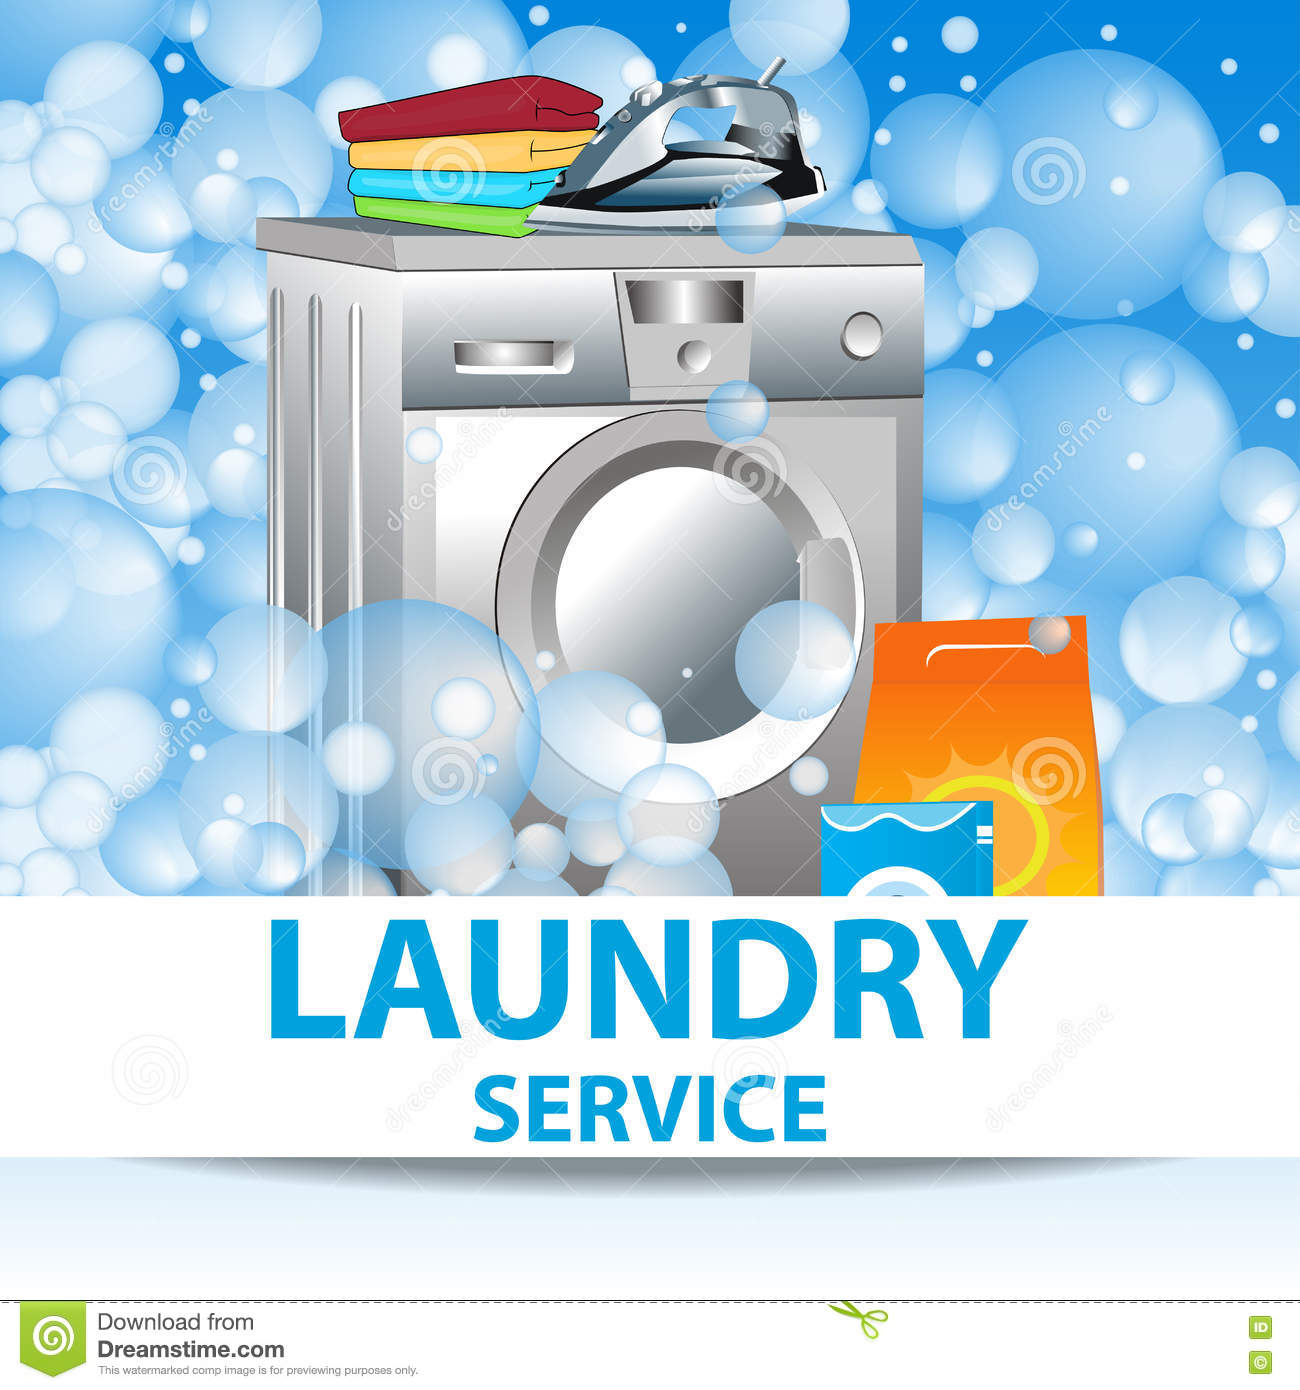 Laundry service poster template for house cleaning for Ironing service flyer template